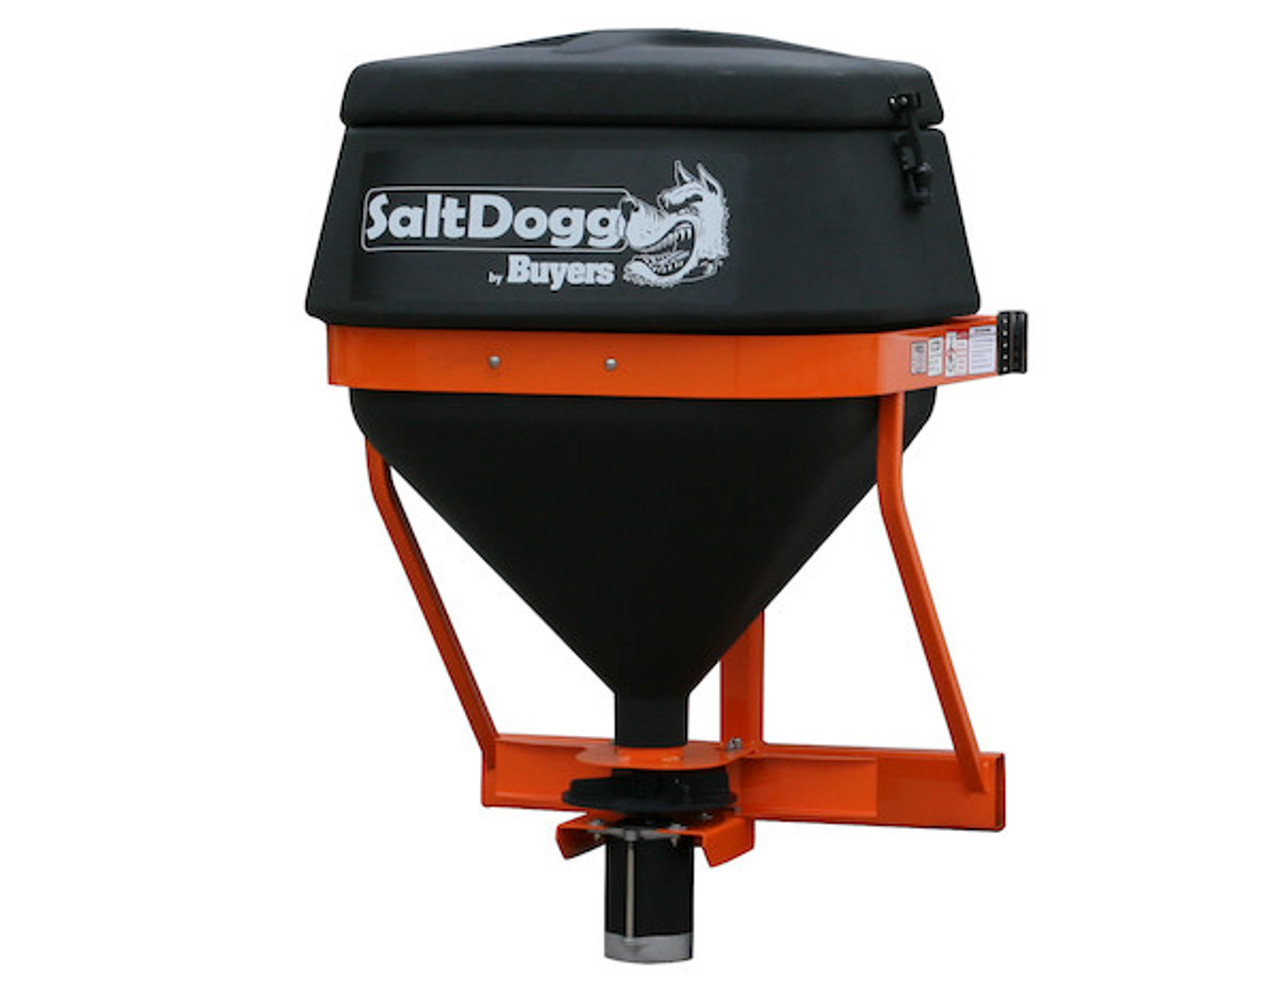 TGS01B BUYERS SALTDOGG 8 CUBIC FOOT COMMERCIAL TAILGATE SPREADER